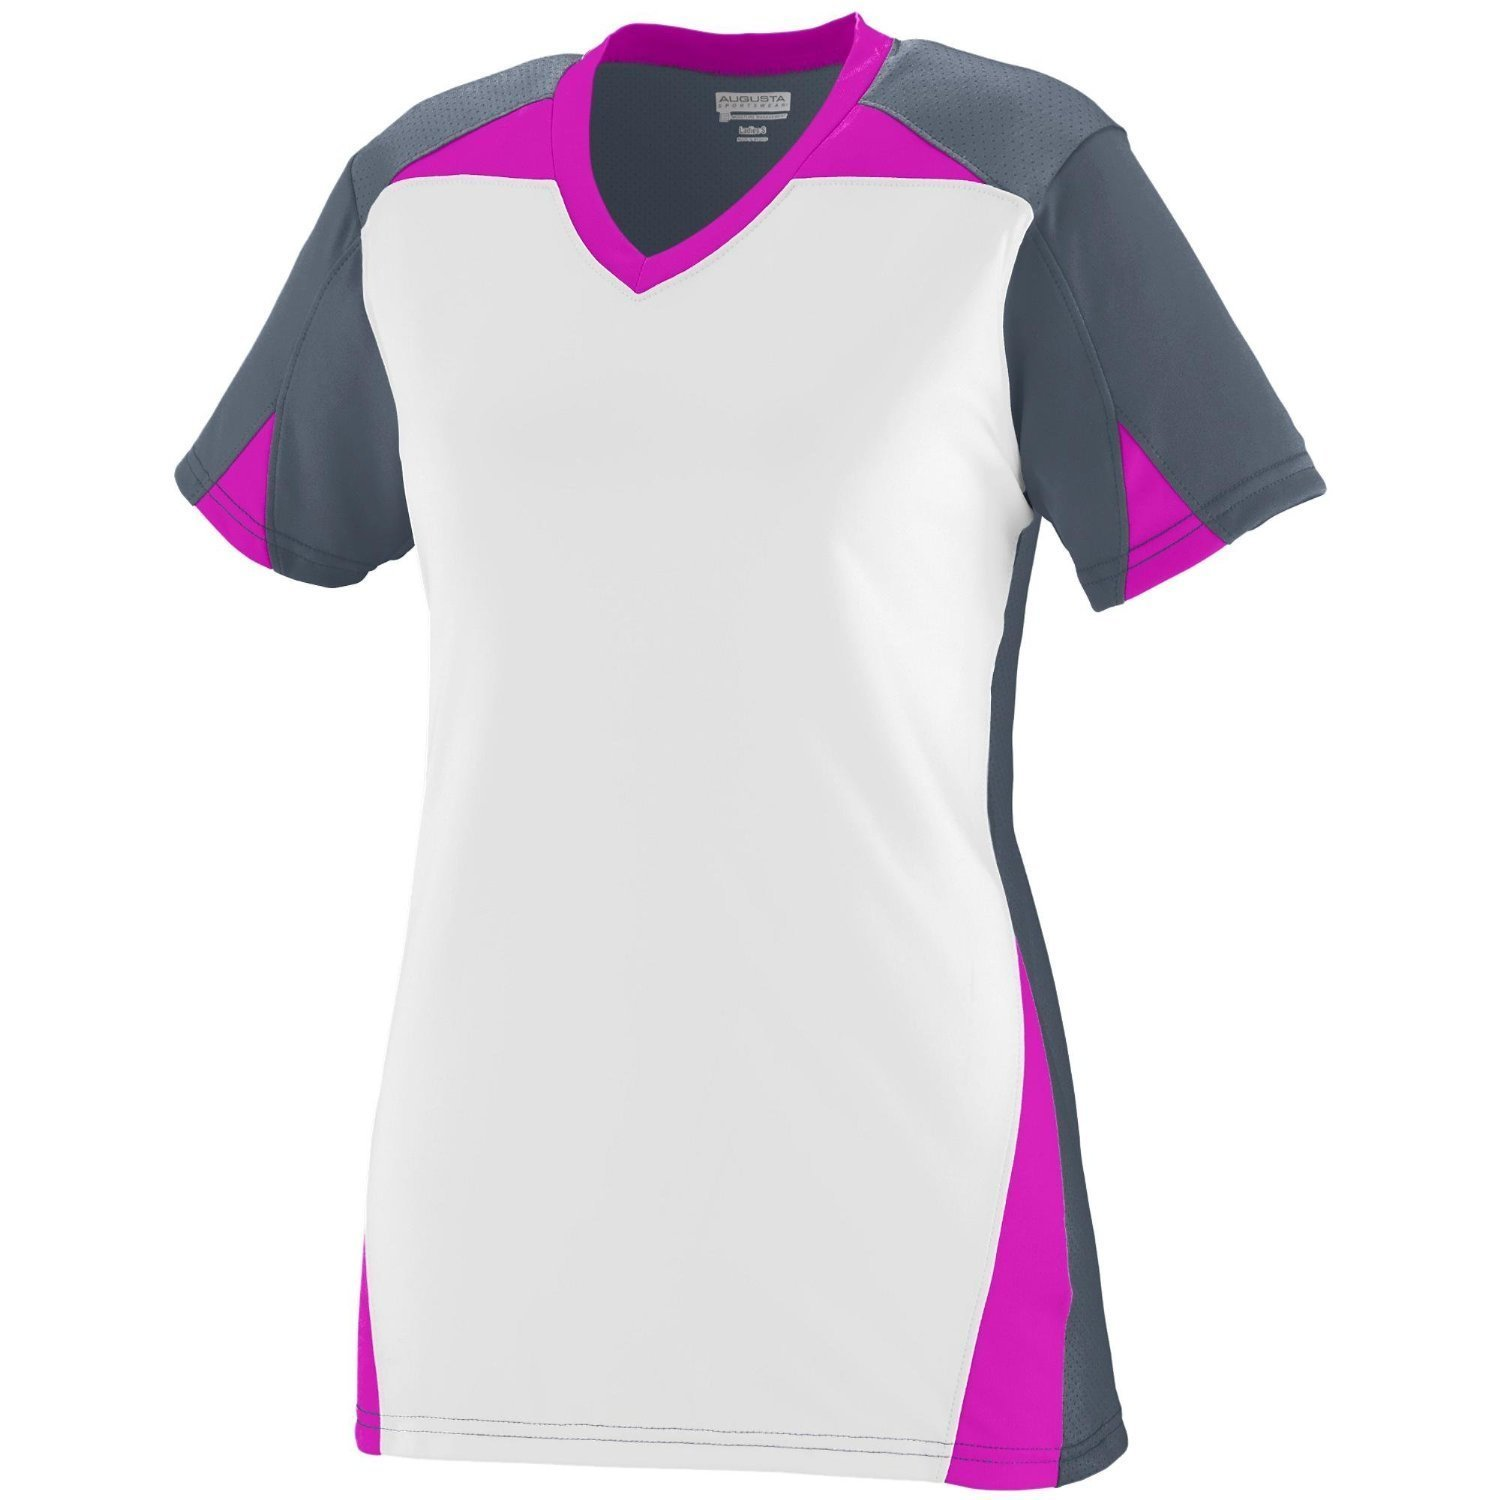 Augusta Sportswear Girls 'マトリックスJersey B00P540M3QGraphite/White/Power Pink Medium